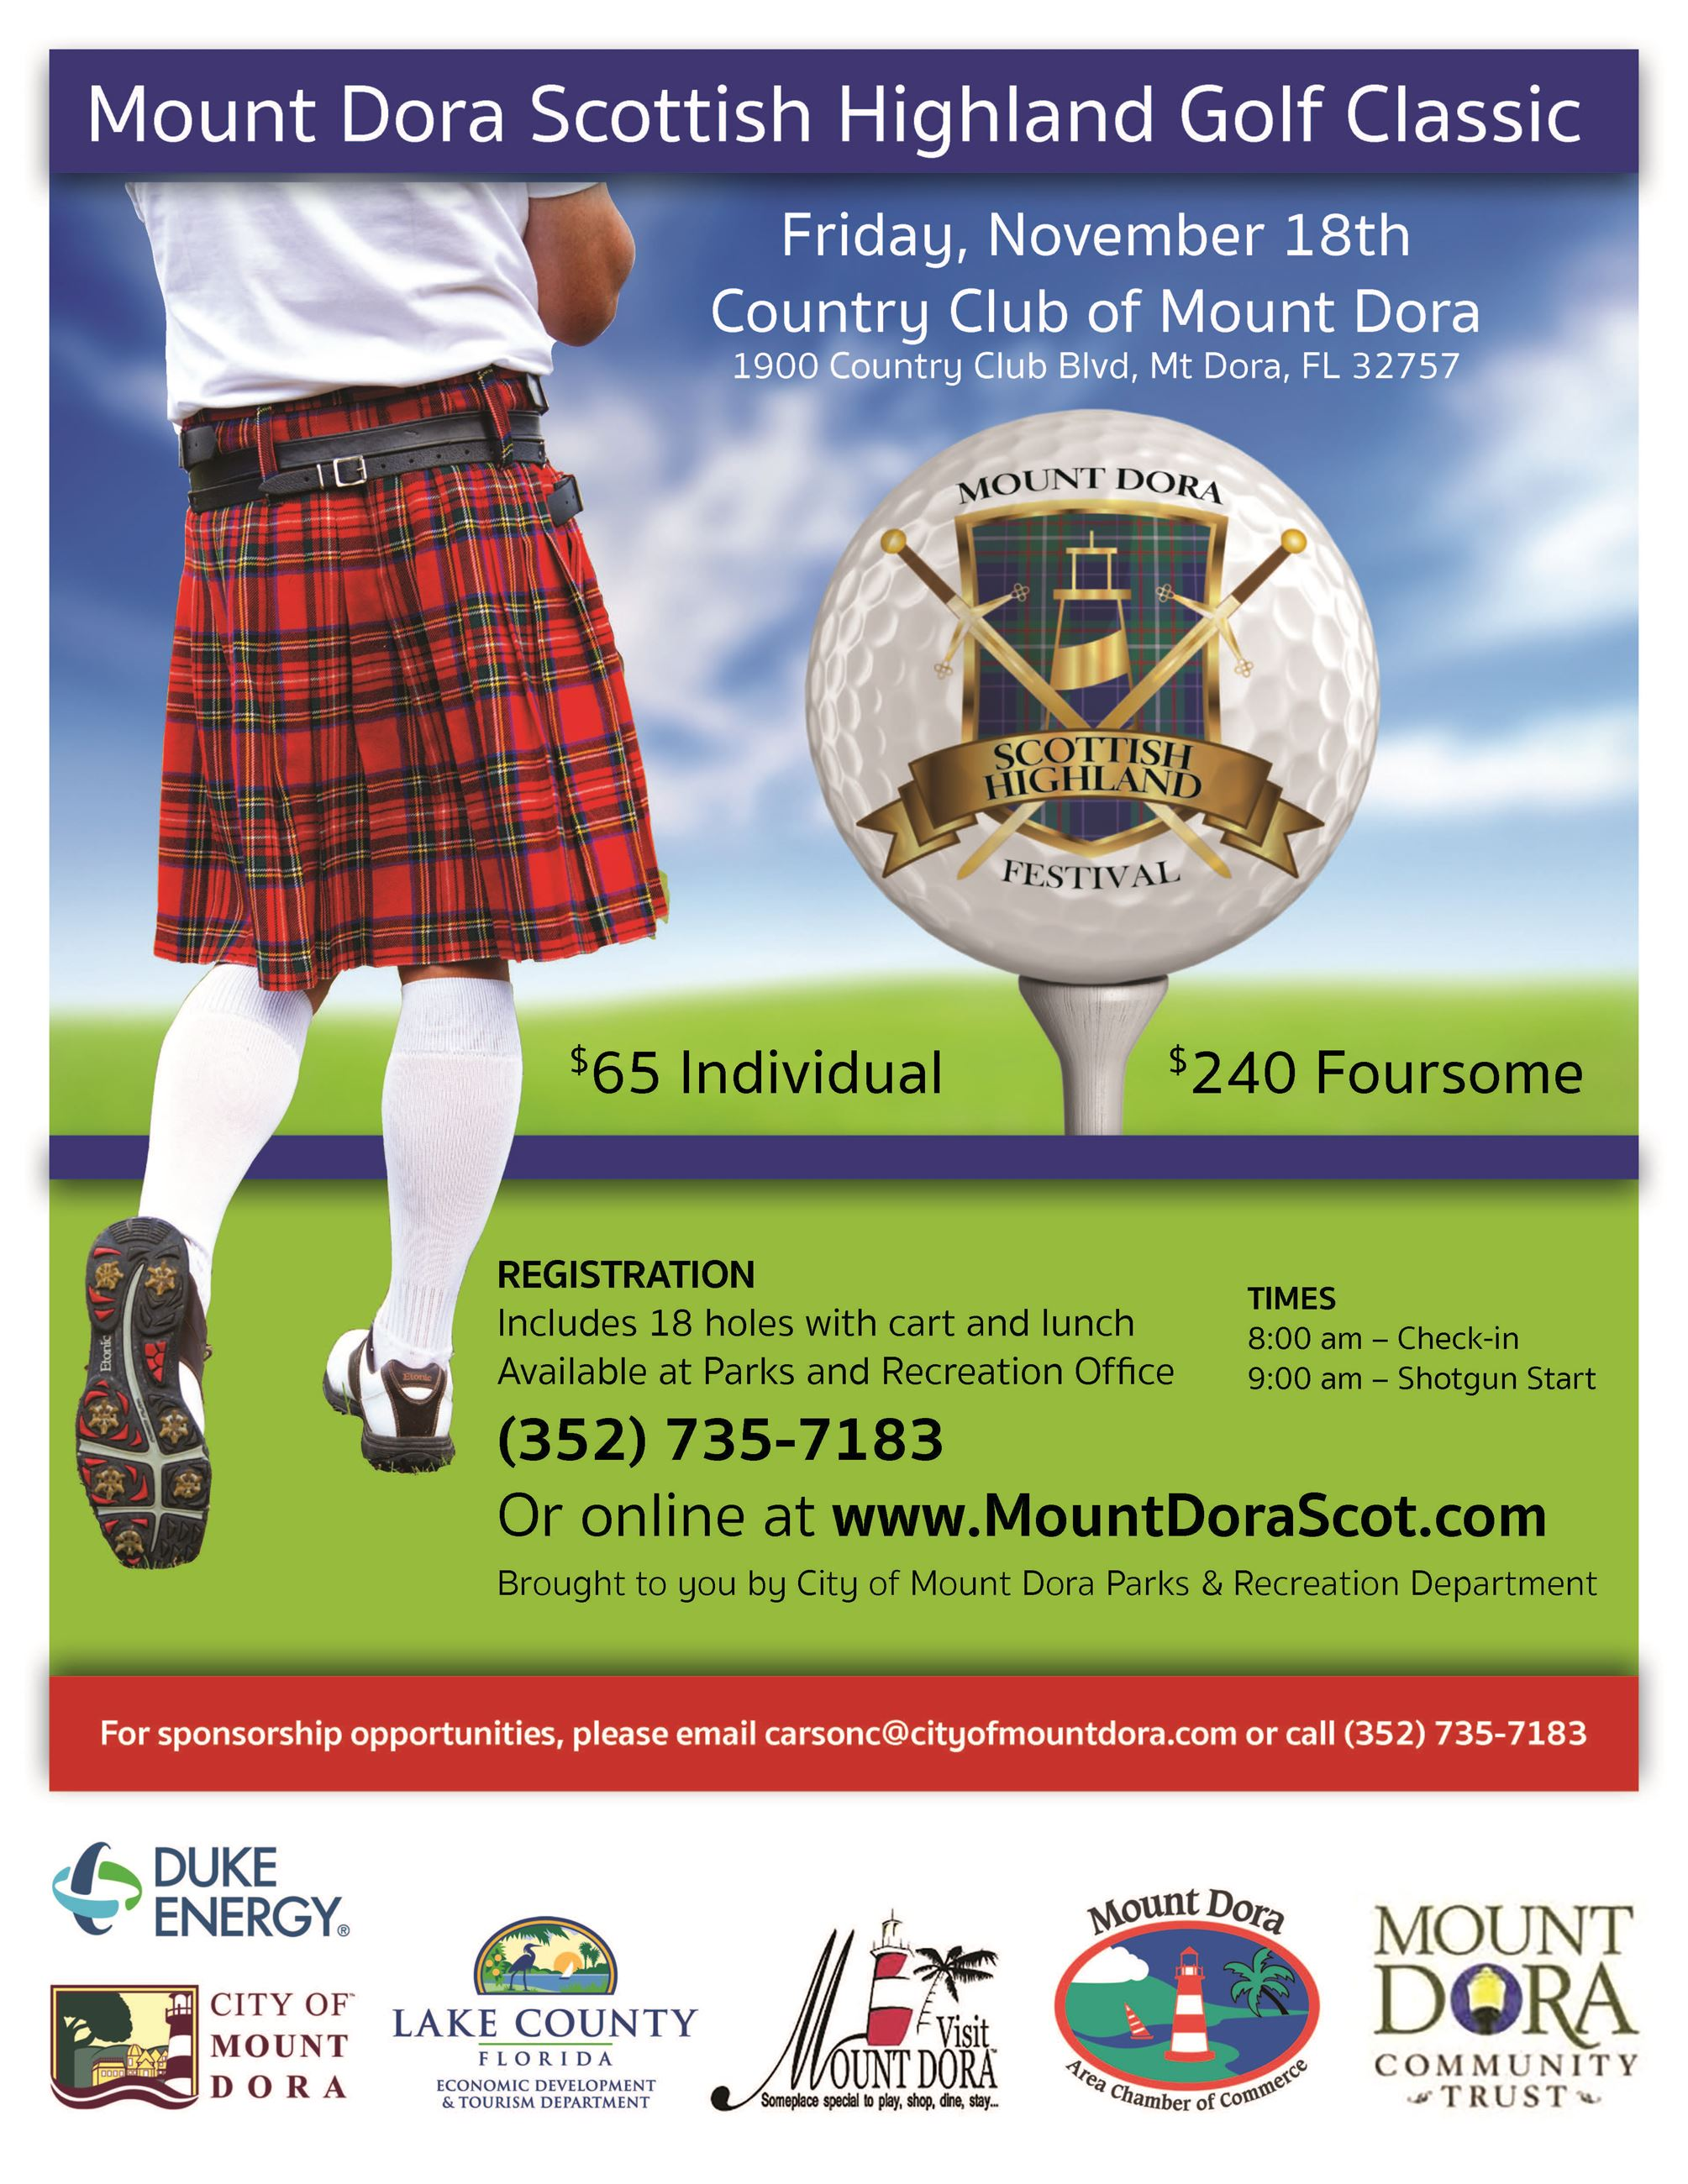 2016 Mount Dora Scottish Highland Classic Golf